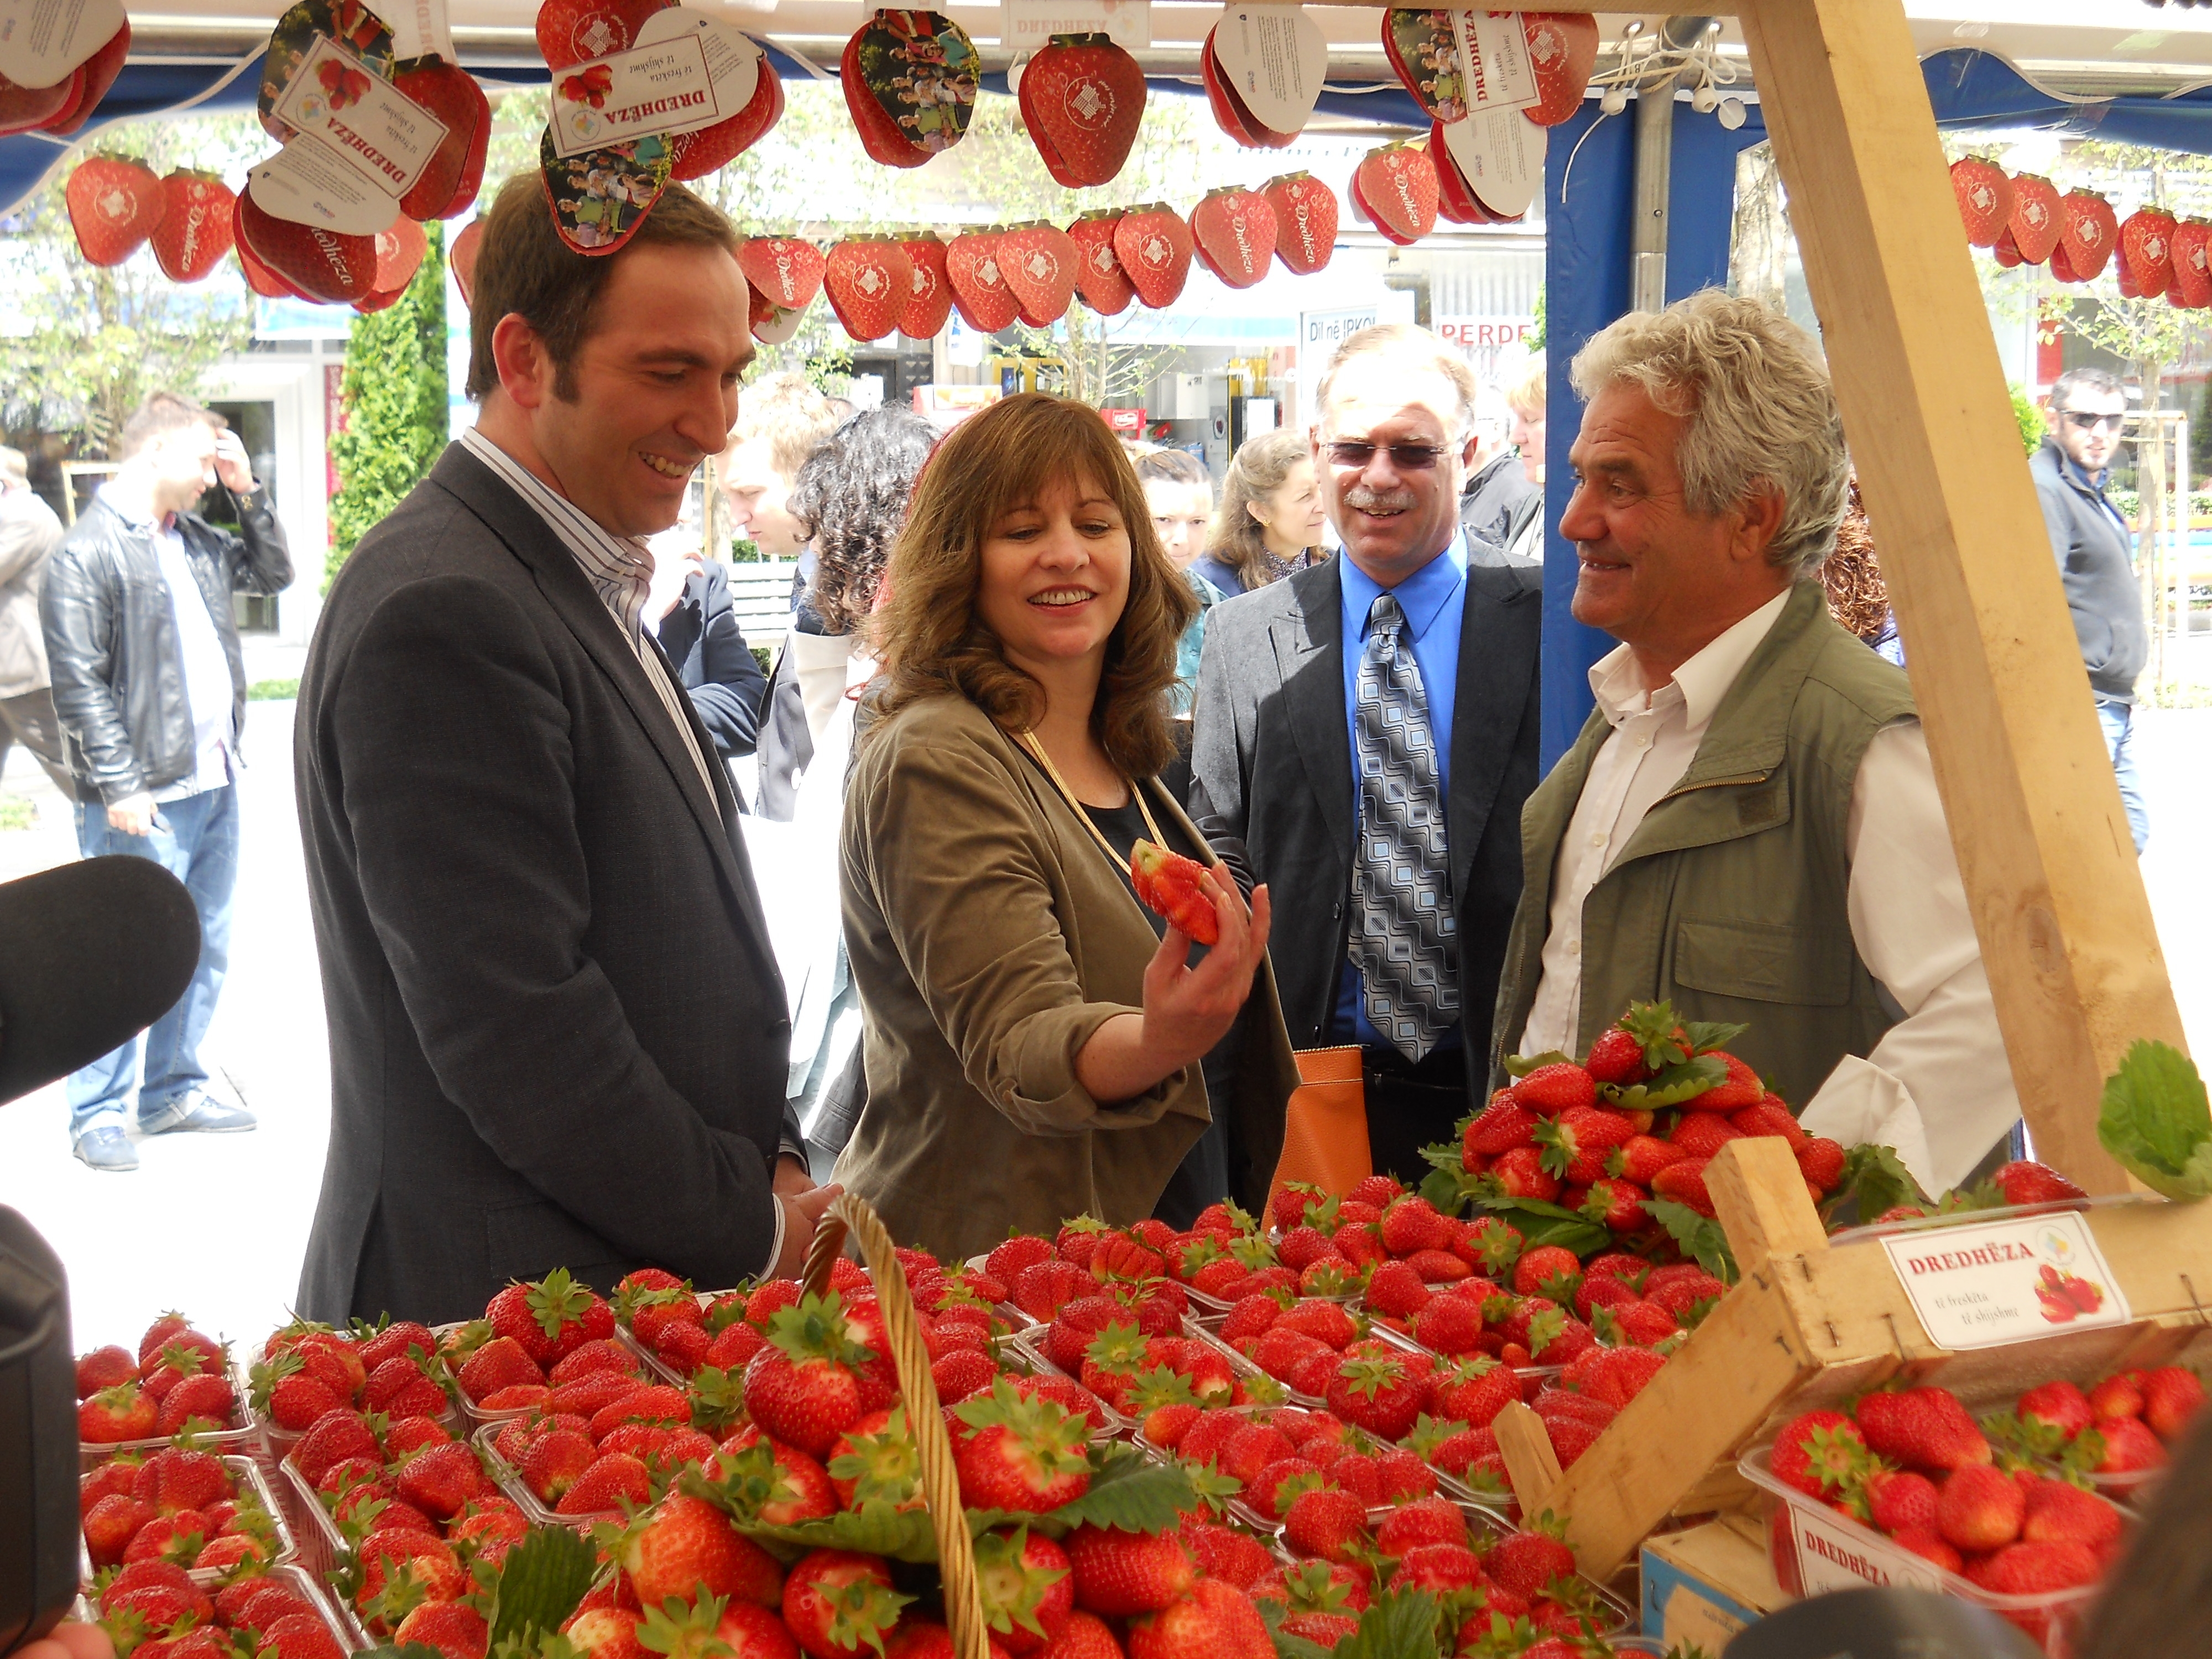 USAID Director and Minister of Agriculture tour the strawberry booths and talk to farmers